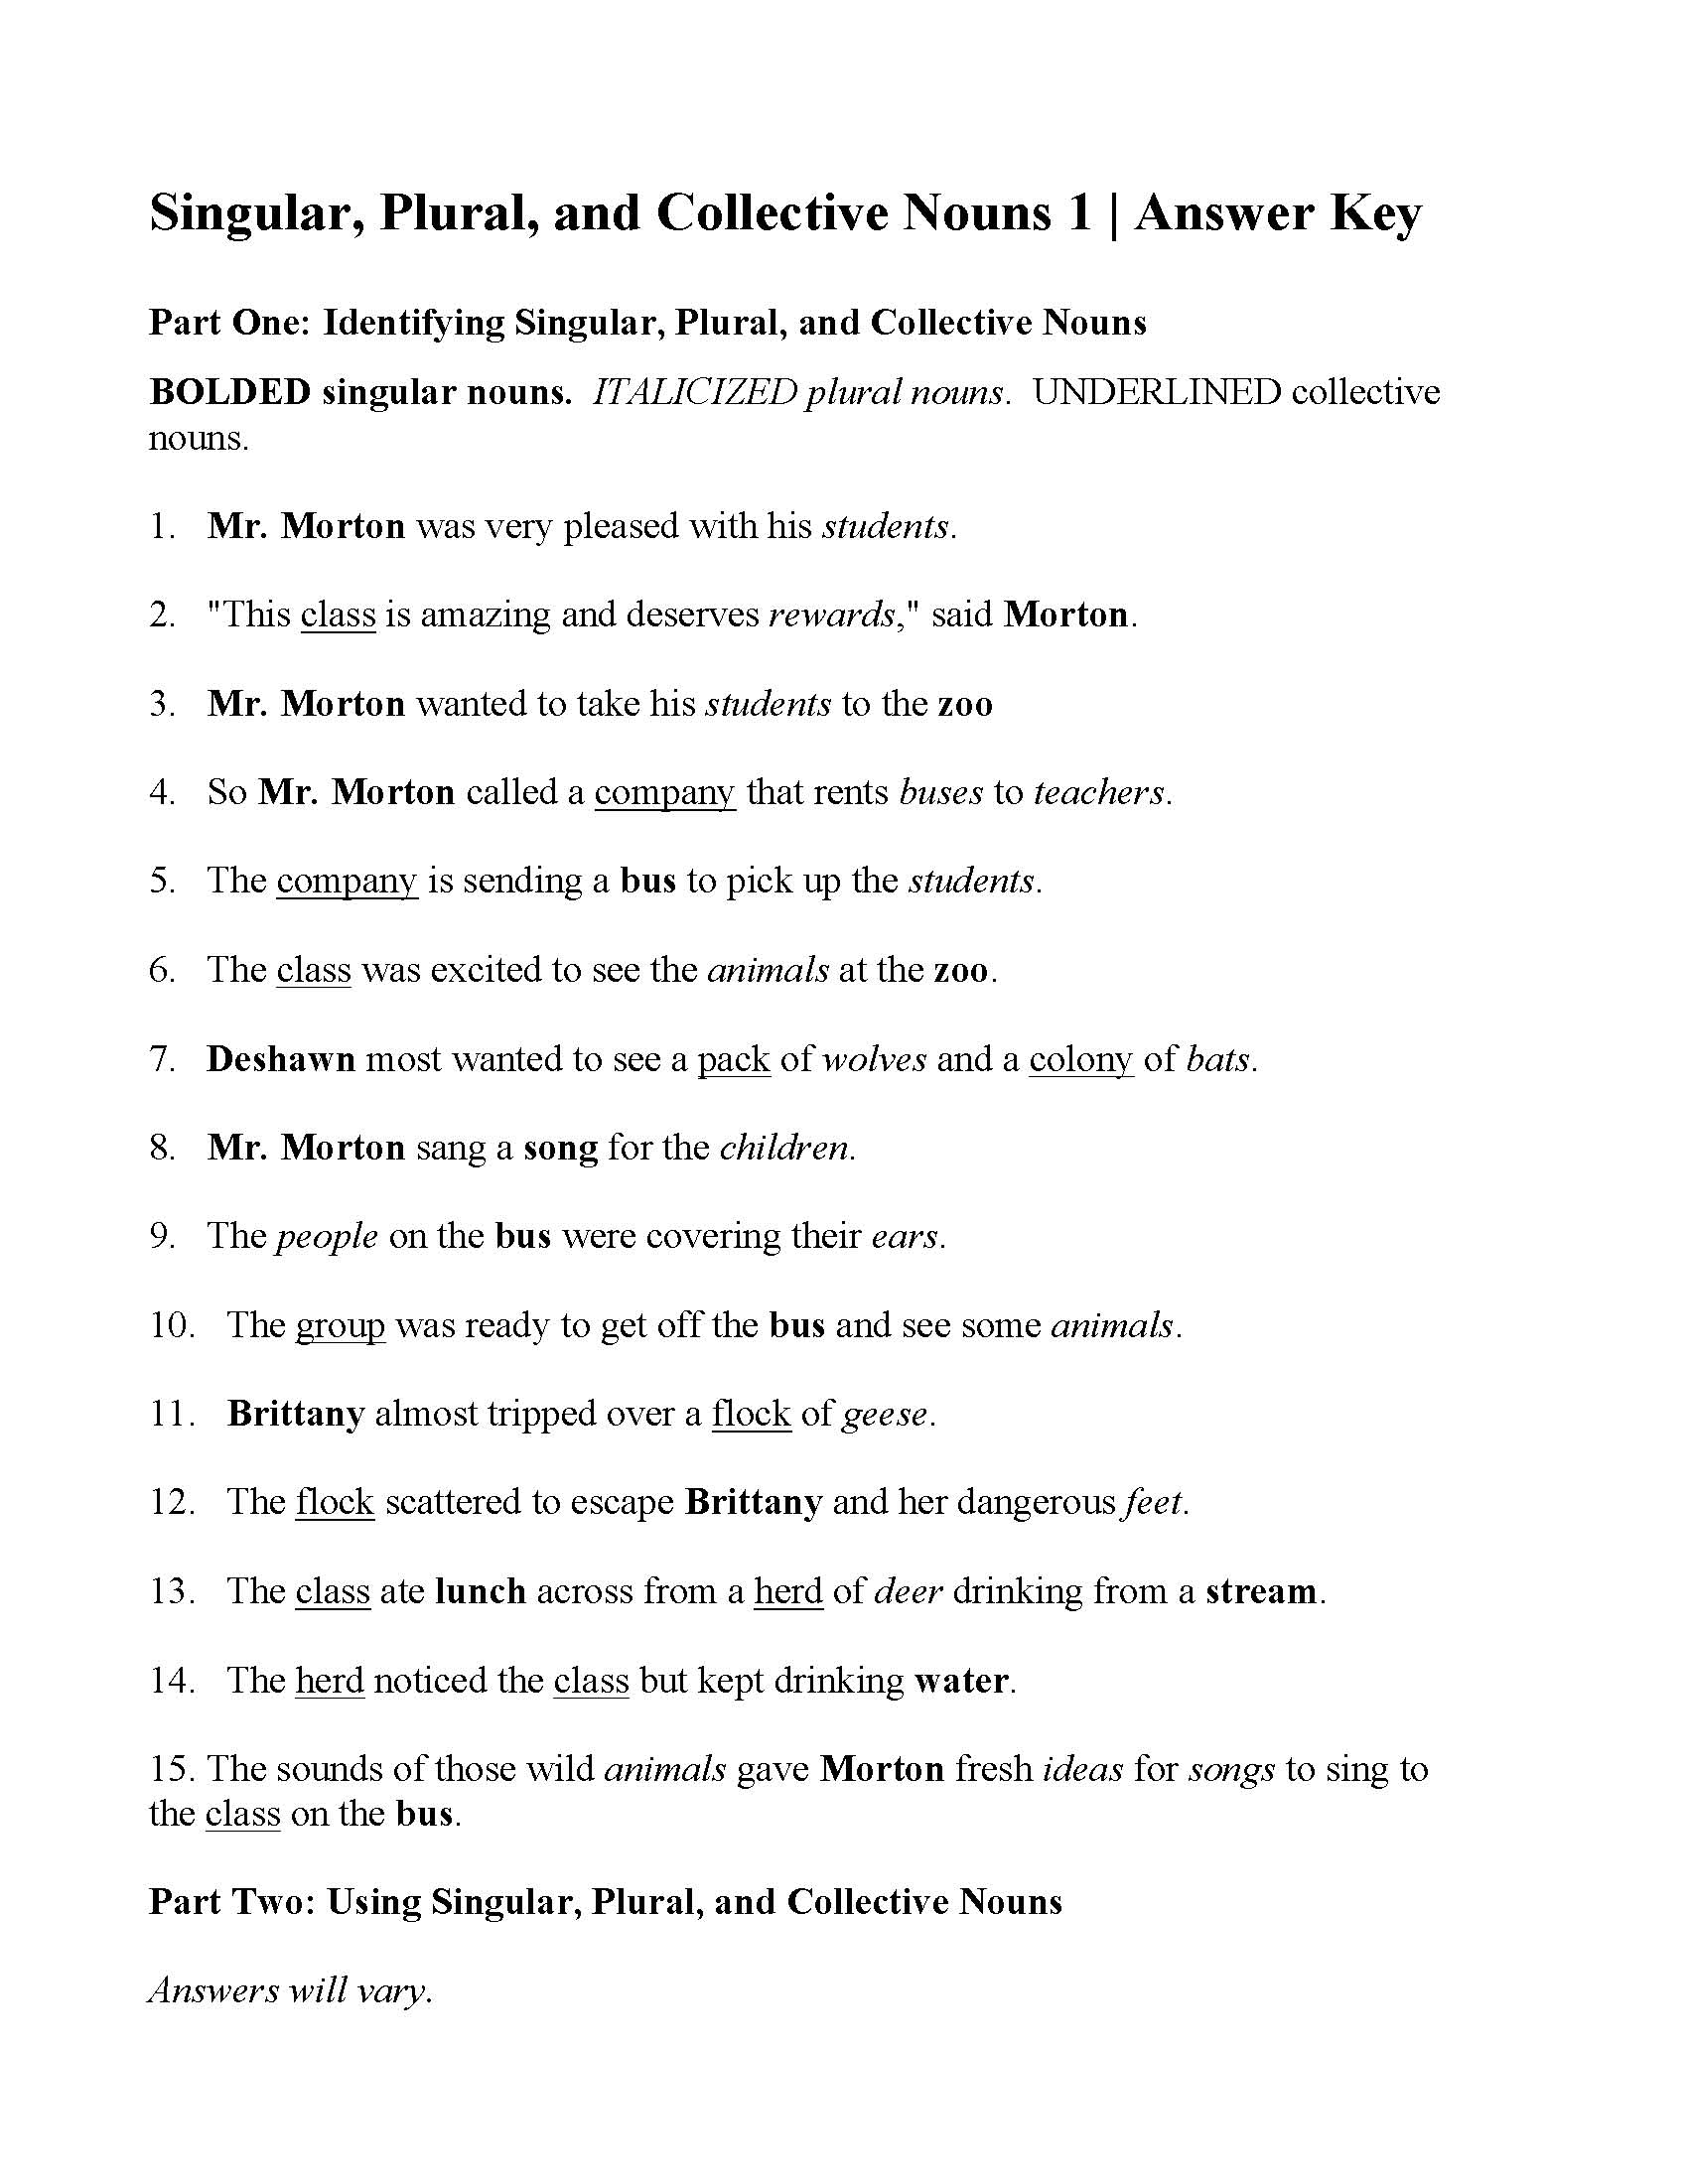 Singular Plural And Collective Nouns Worksheet Answers